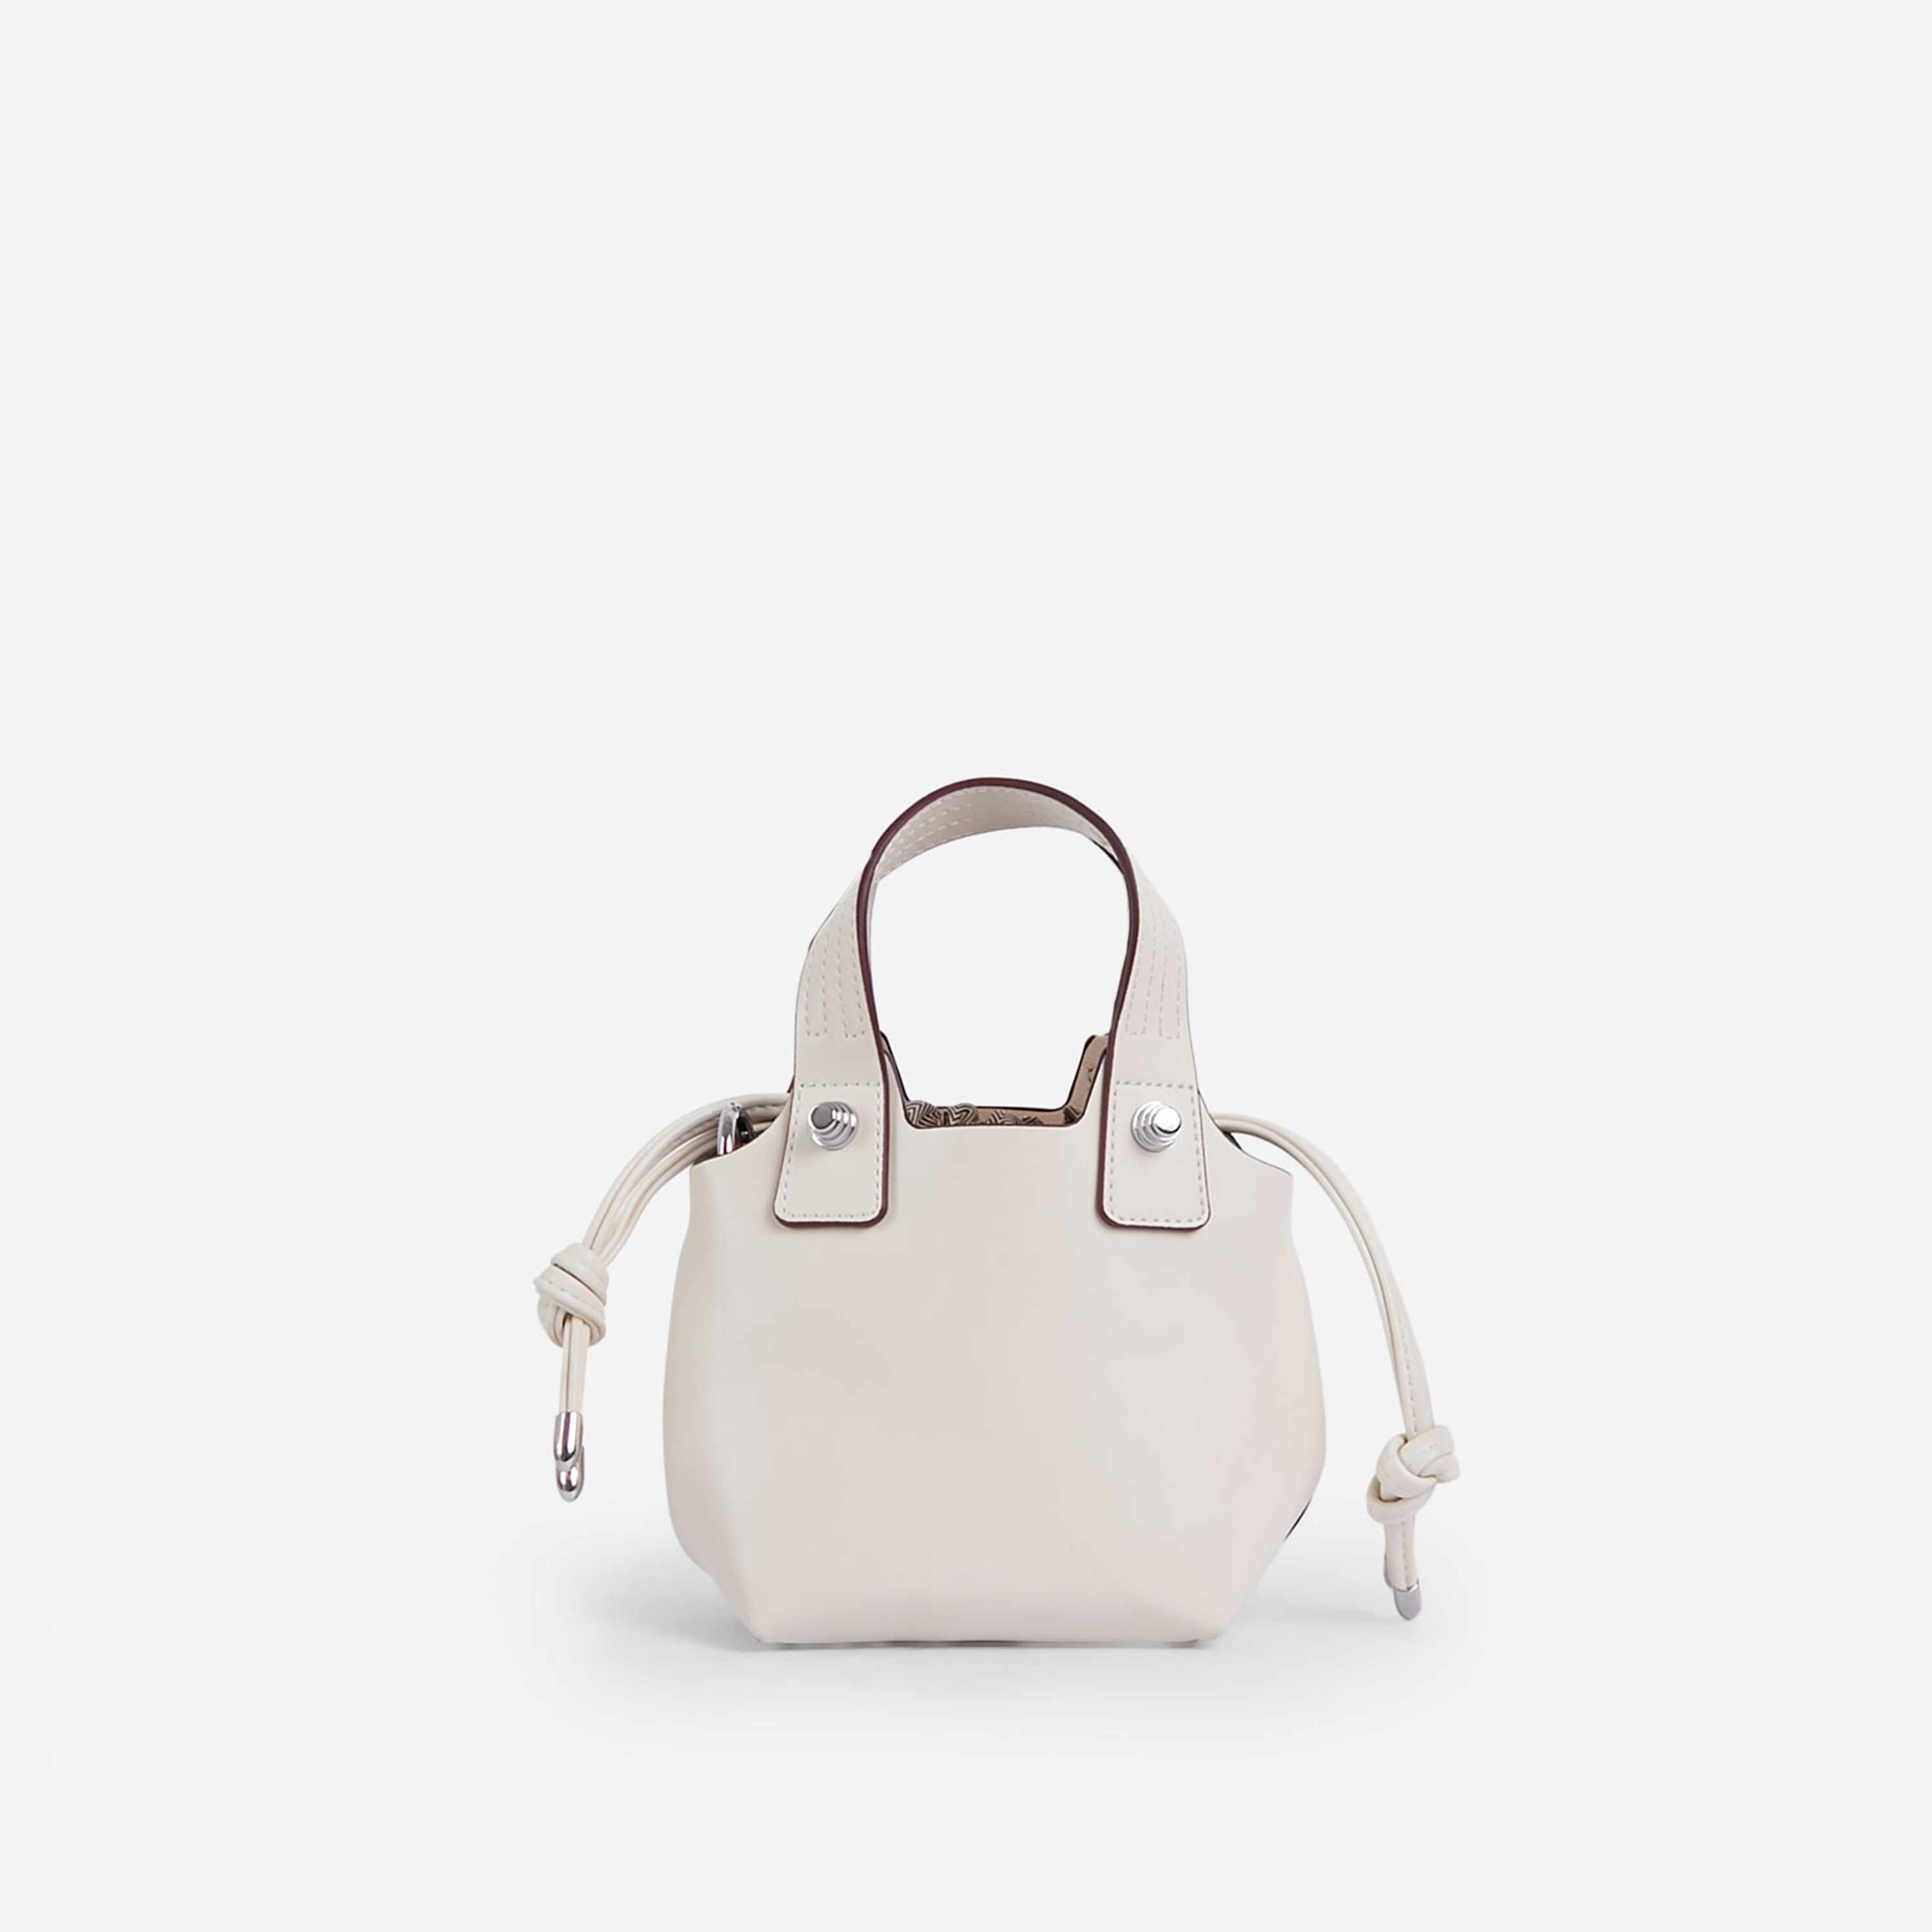 Lucie Cross Body Bucket Bag In Nude Faux Leather